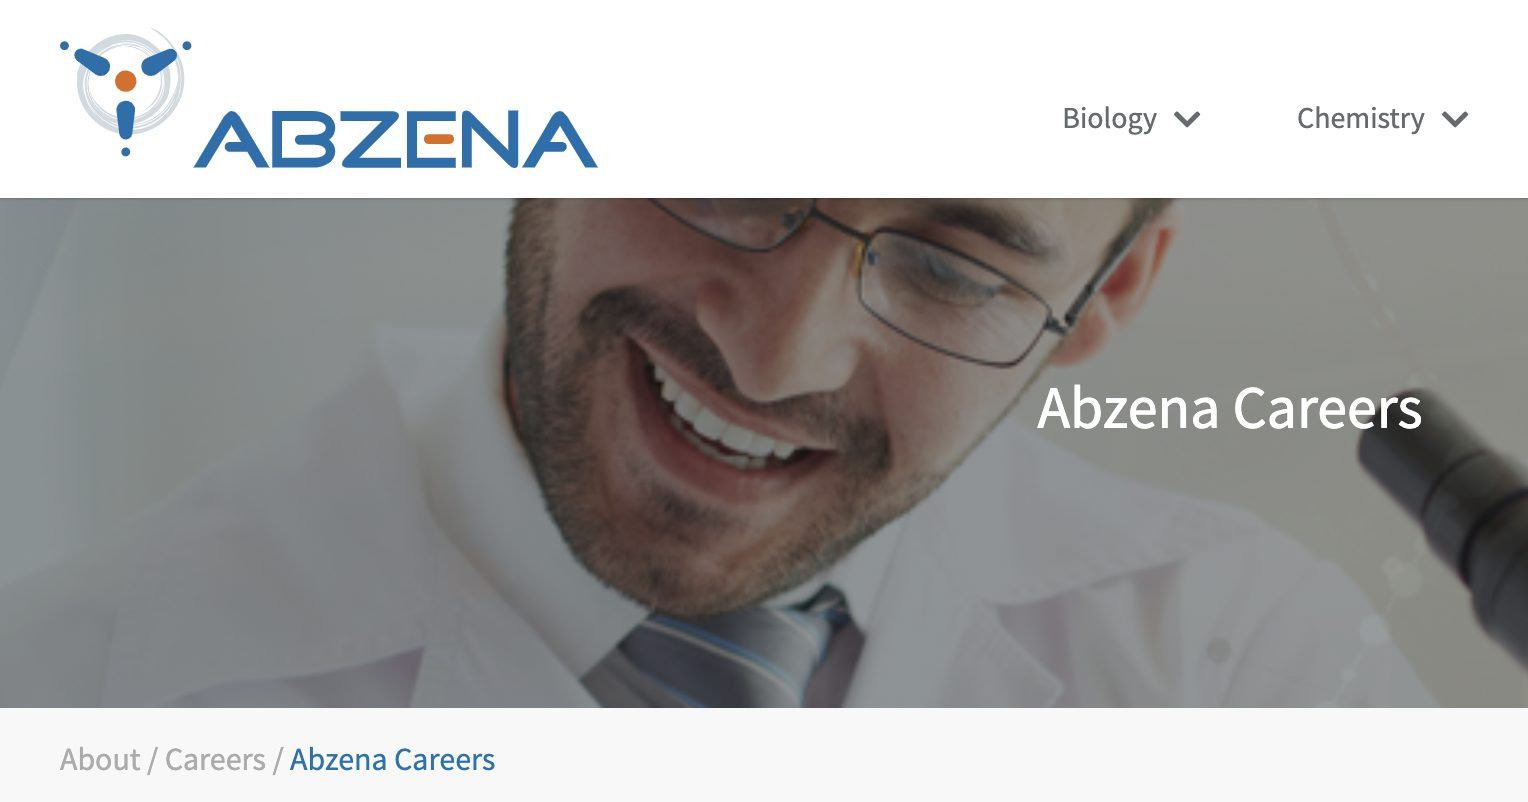 Open positions for scientists in Bioconjugation at Abzena (Cambridge, UK)